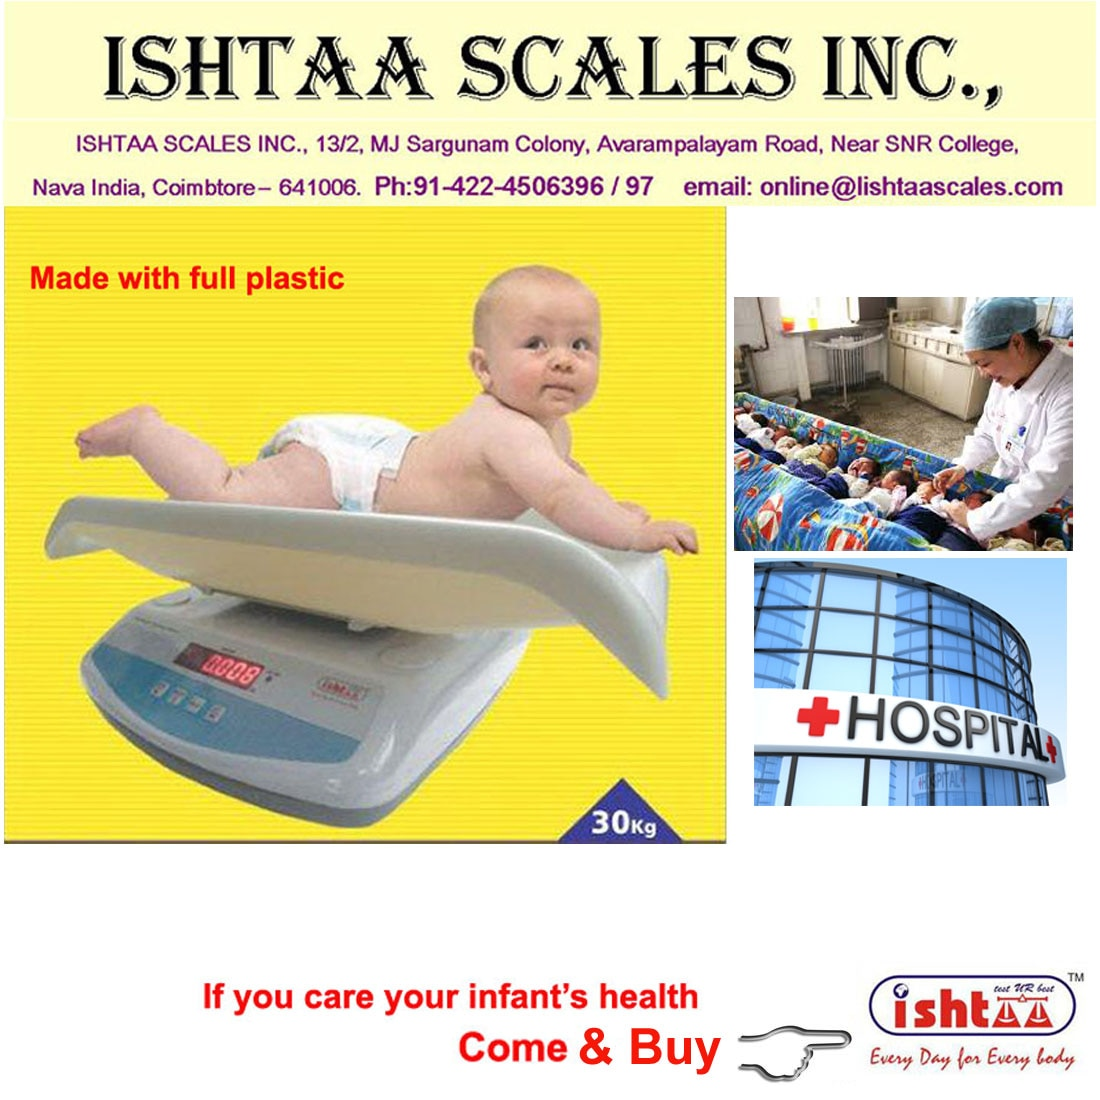 Know your infant's health chart..! We provide quality devices made 4 u. Digital Baby Weighing Scales at Best Quality High Accuracy Electronic Weighing Scales Made with full Plastic to safeguard the Babies health  Used in all Hospital weighing  Infant Weighing  Newborn weighing Paediatric weighing Chart Weighing  Baby Weighing Scale online Buy now @ Ishtaa scales Coimbatore. Check in http://goo.gl/K6zB9r ,  Ring 098430 16028 https://t.co/iFfdI1SIIS Email . online@ishtaascales.com Web: www.ishtaascales.com